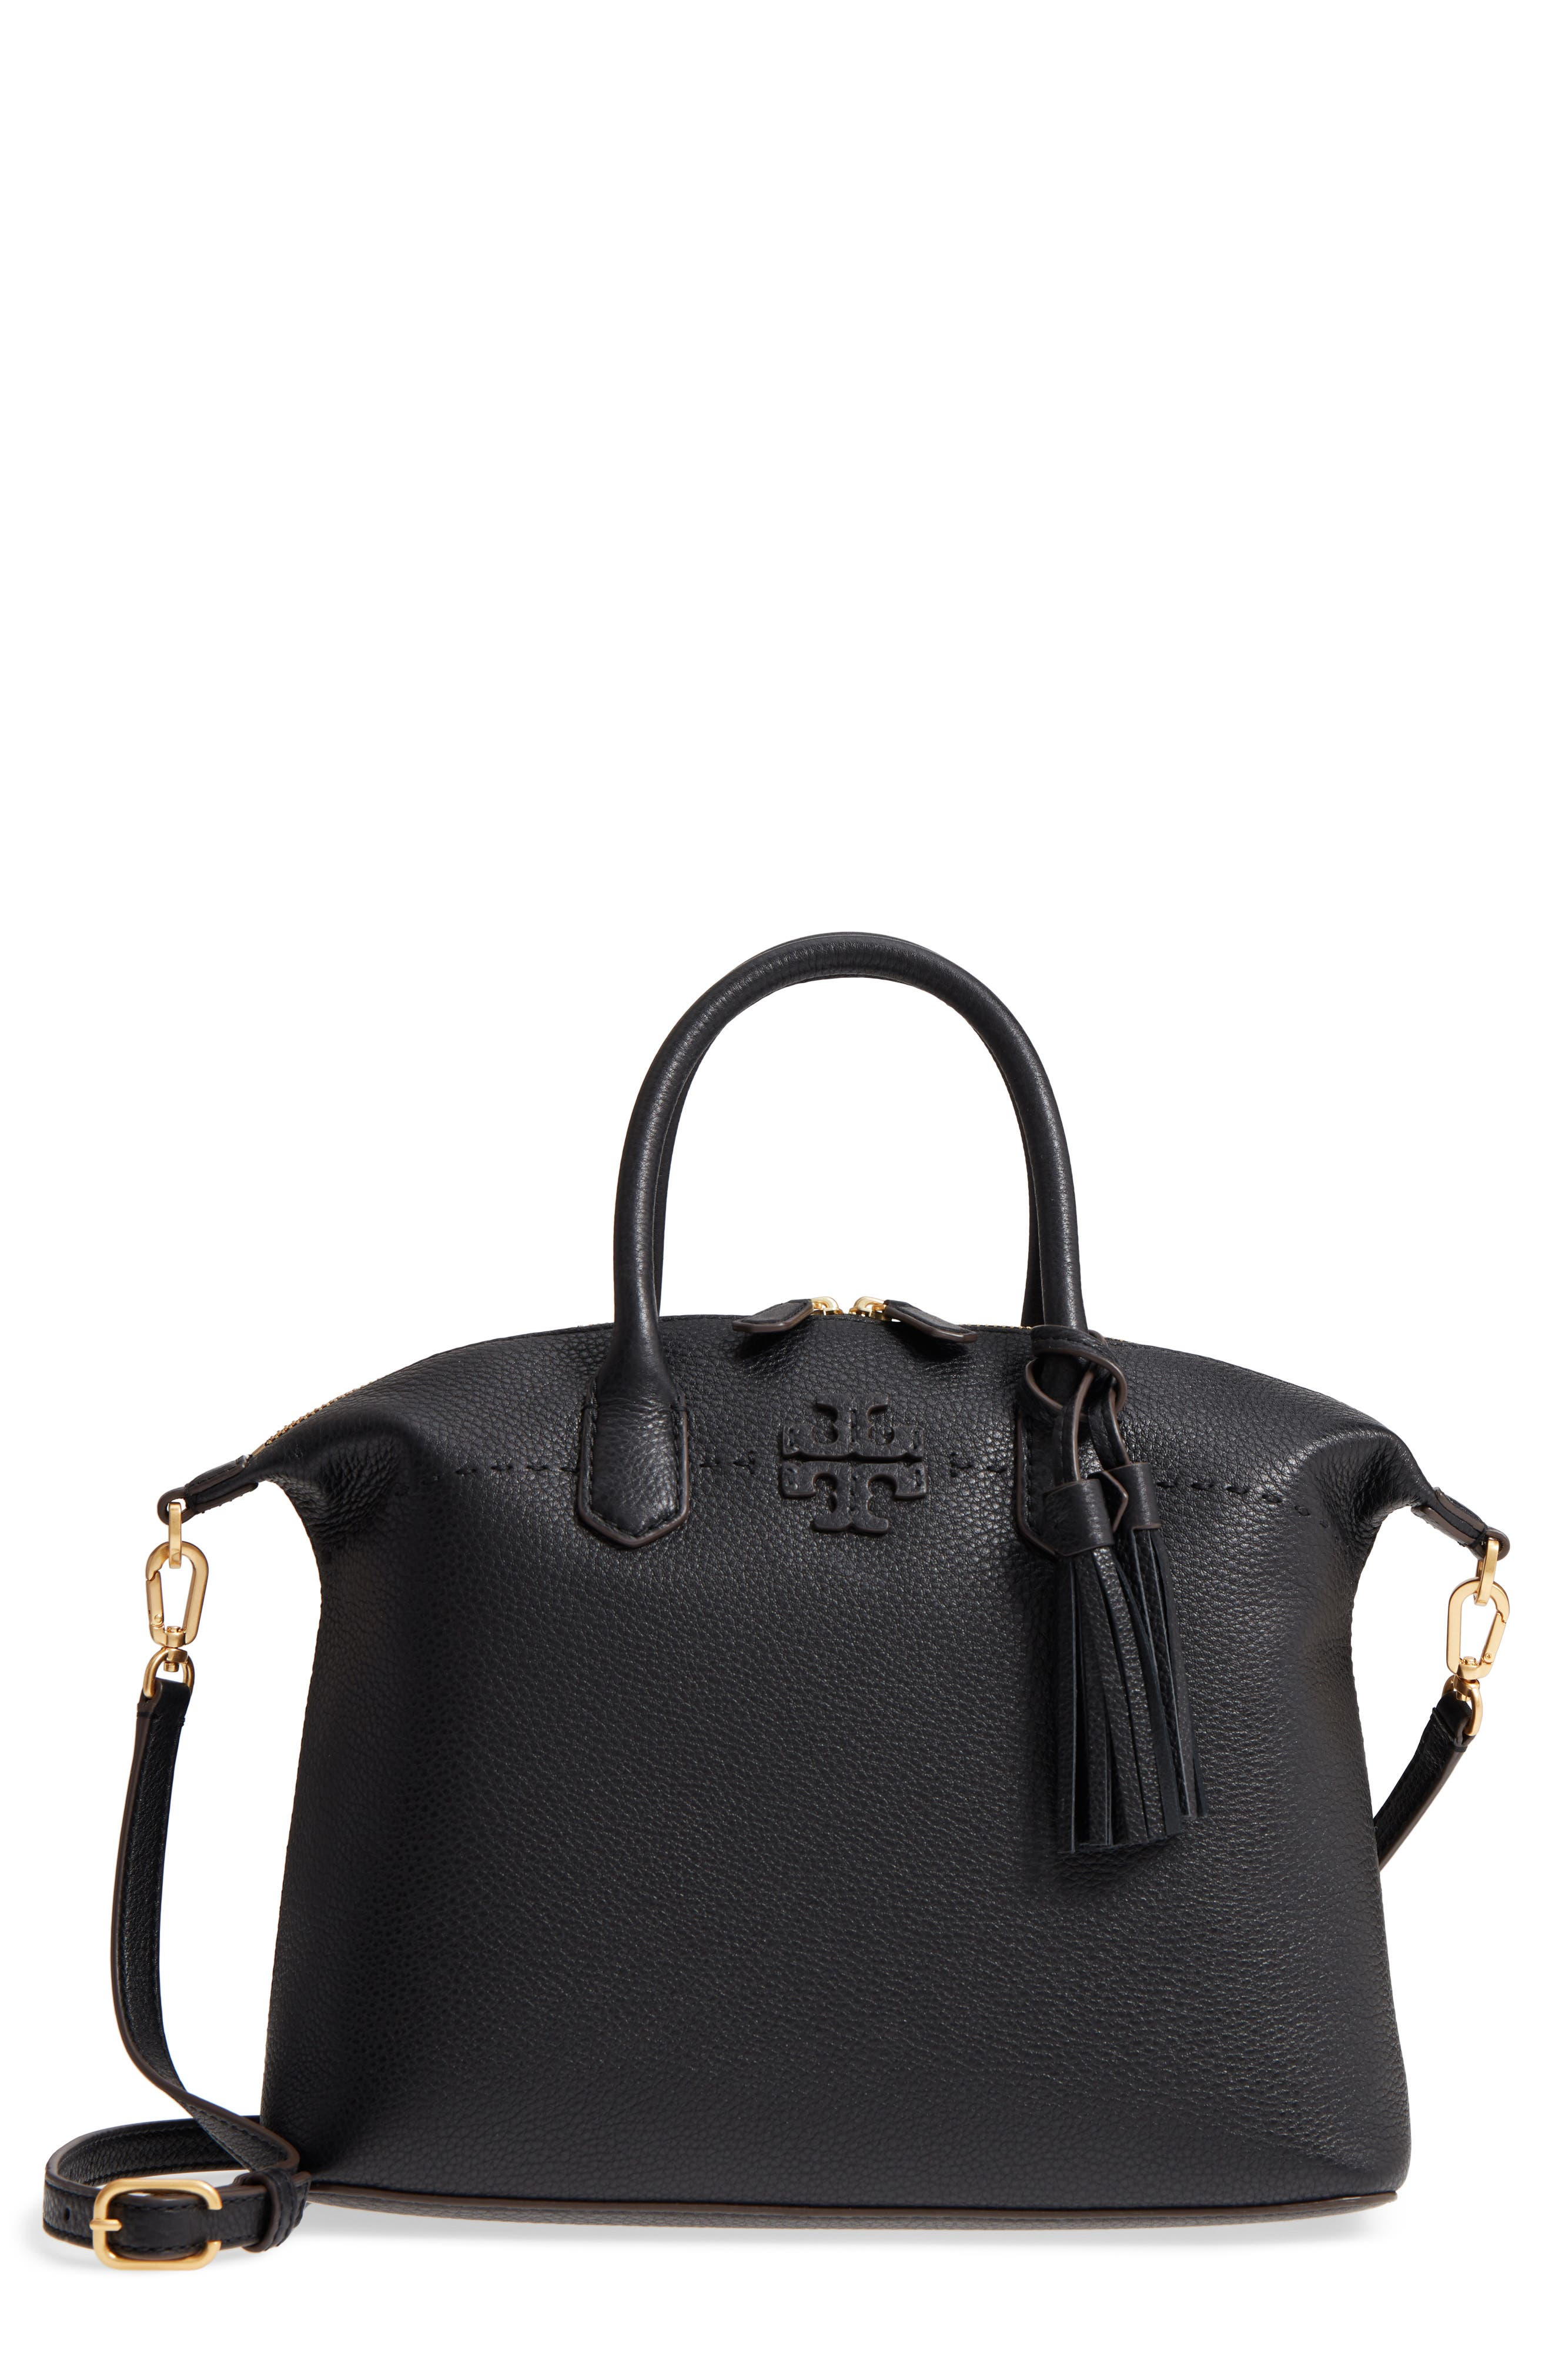 TORY BURCH,                             McGraw Slouchy Leather Satchel,                             Main thumbnail 1, color,                             BLACK